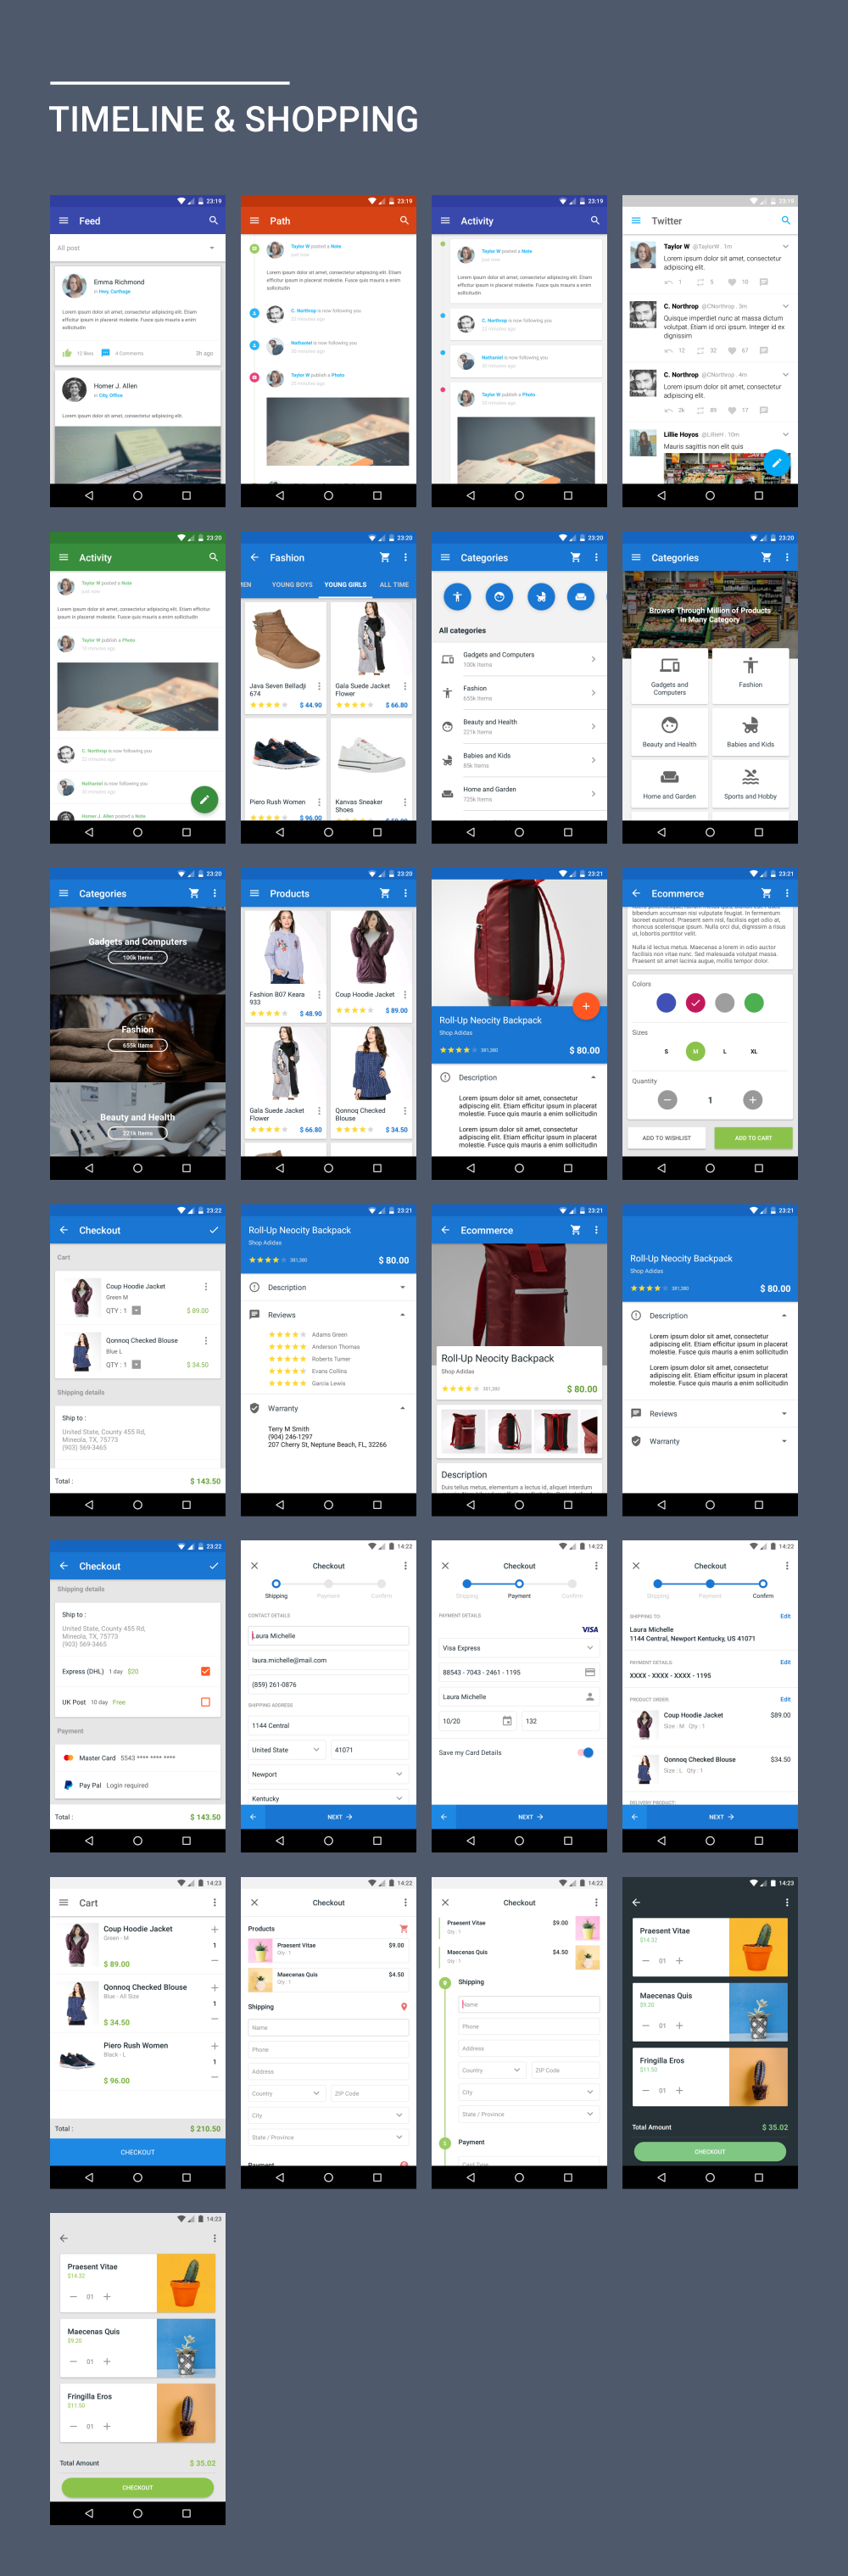 Materialx Android Material Design Ui Components 21 By Dreamspace